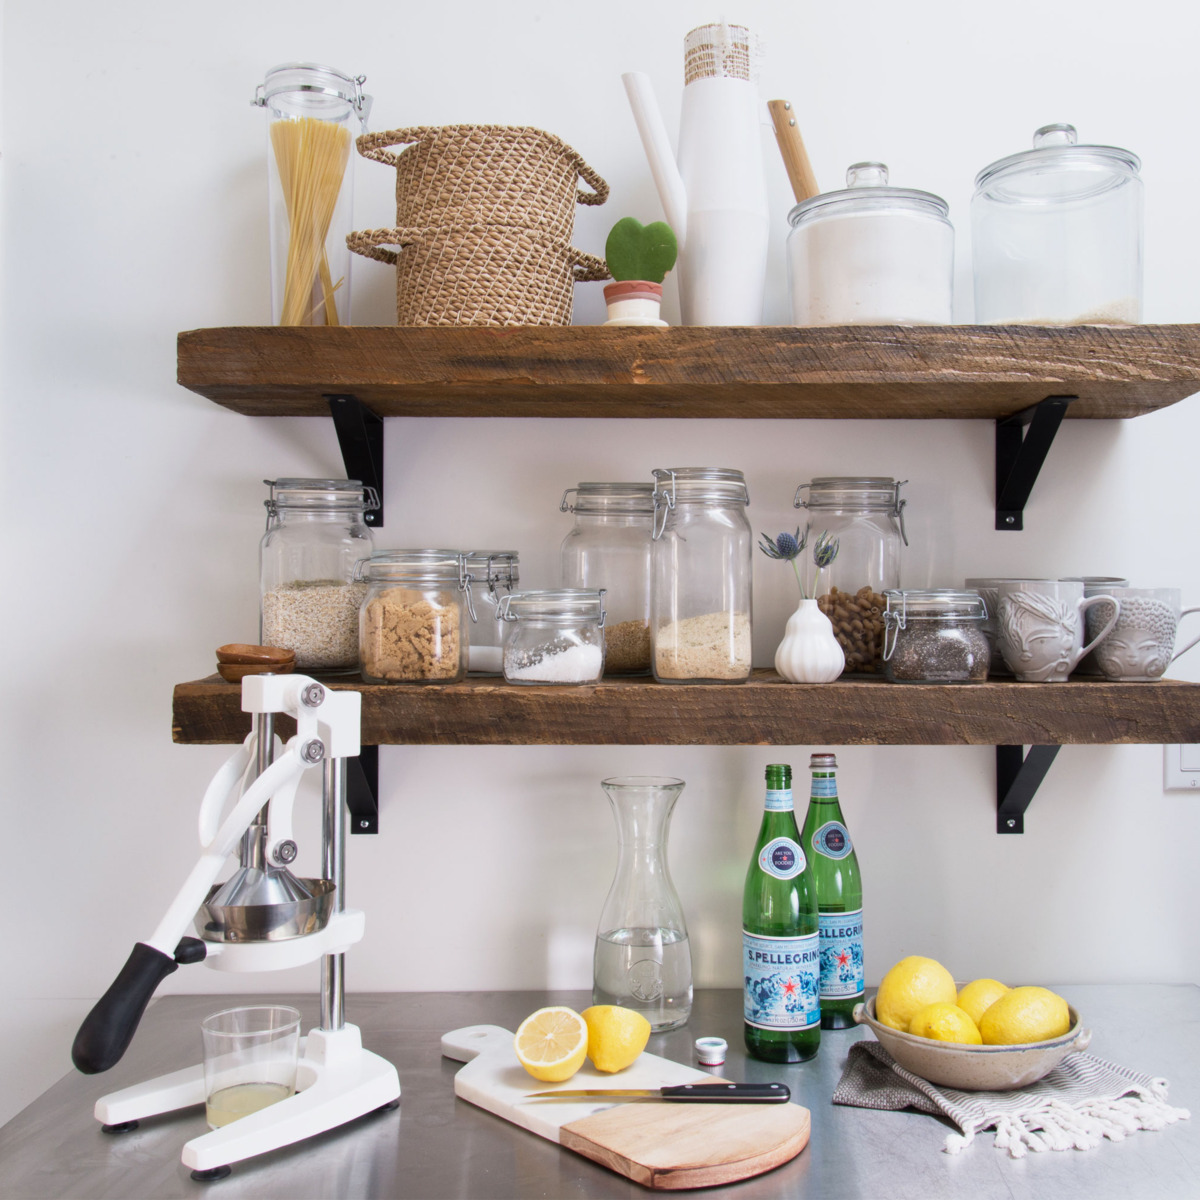 13 Easy Small-Kitchen Ideas Under $100 - 2018 | The ... Ideas For Small Kitchen Shelves on small color ideas, bar shelves ideas, small studio apartment kitchen idea, kitchen shelves decorating ideas, small corner shelves for kitchen, small kitchens with open shelves, bar kitchen interior design ideas, kitchen cabinets shelves ideas, open kitchen shelves ideas, sauna shelves ideas, small townhouse design ideas, corner kitchen shelves ideas, small pantry shelving ideas, storage shelves ideas, open kitchen cabinet ideas, open shelf kitchen design ideas, home shelves ideas, bedroom shelves ideas, diy kitchen storage ideas, country kitchen shelves ideas,